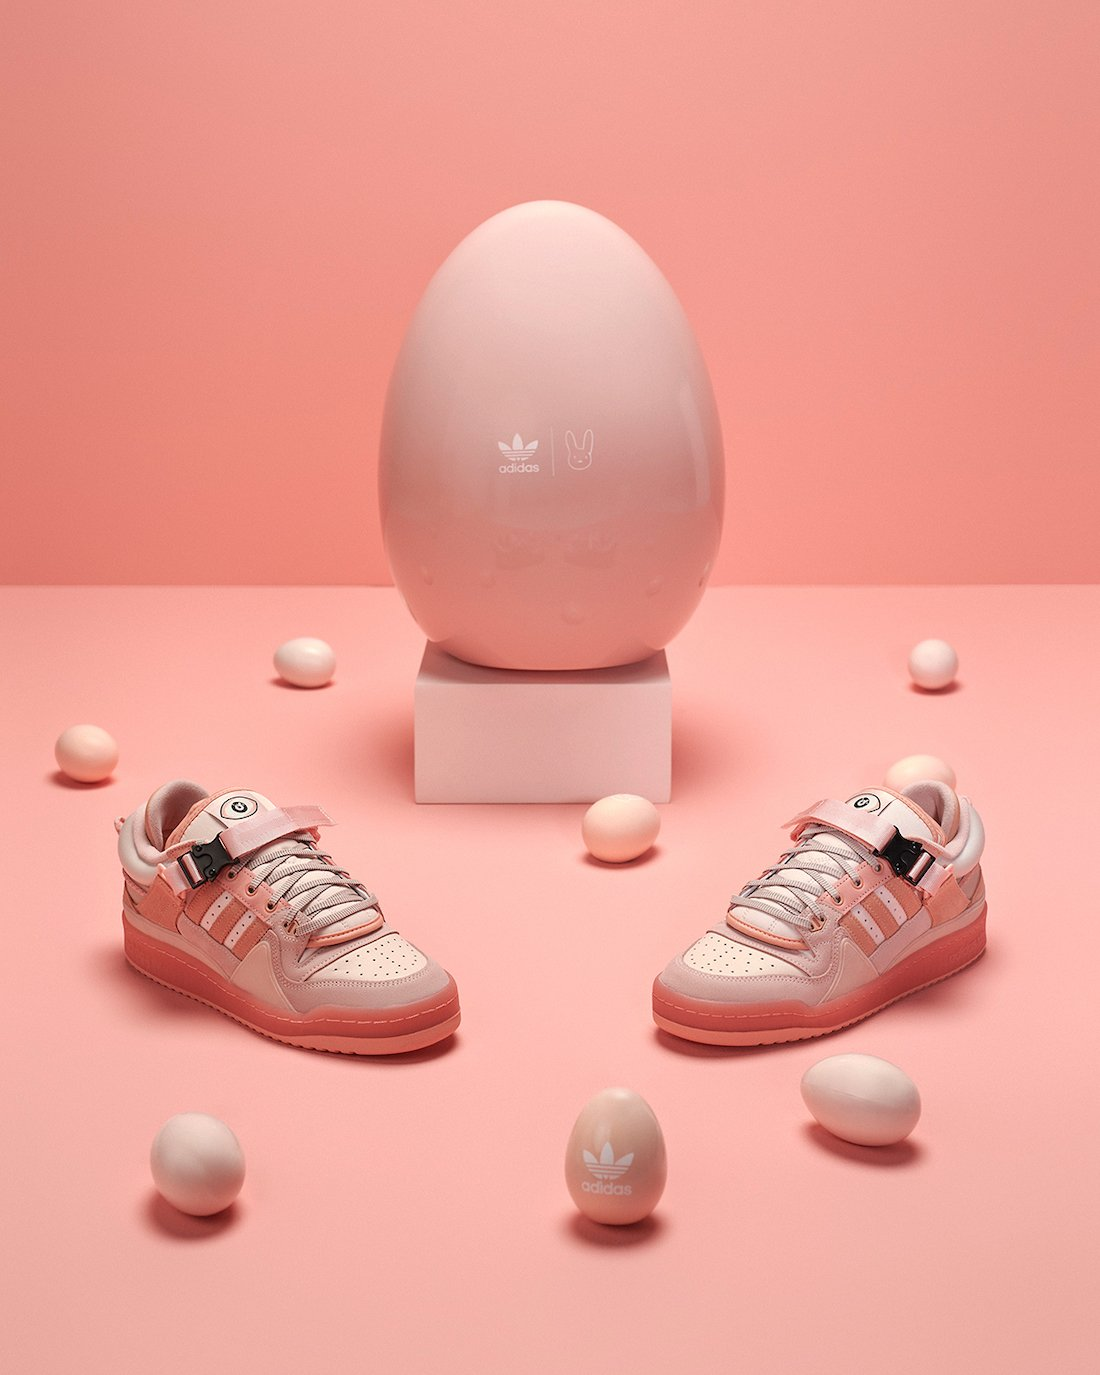 Bad Bunny adidas Forum Buckle Low Easter Egg GW0265 Release Date